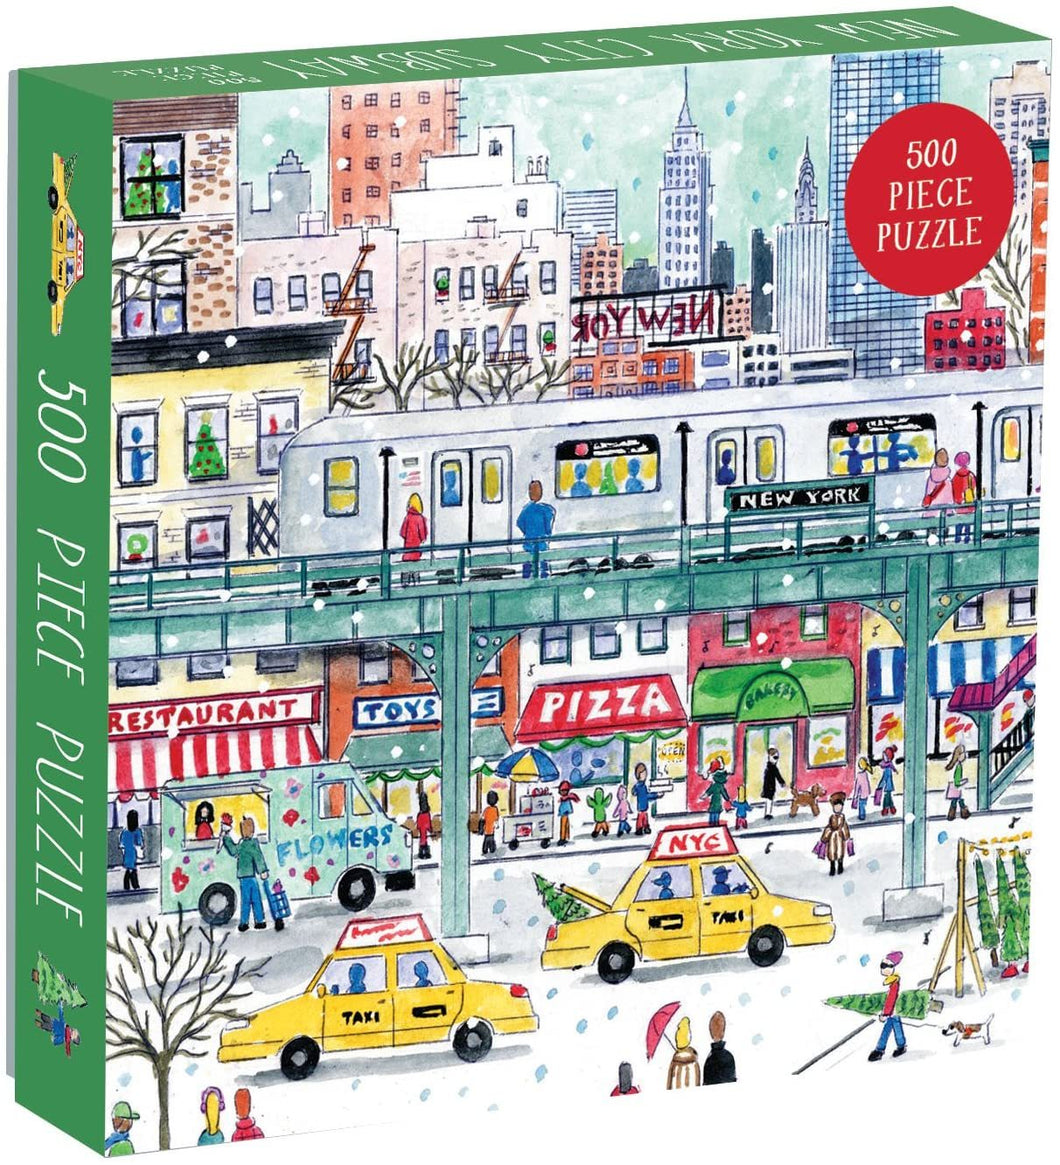 New York City Subway by Michael Storrings 500pc Puzzle